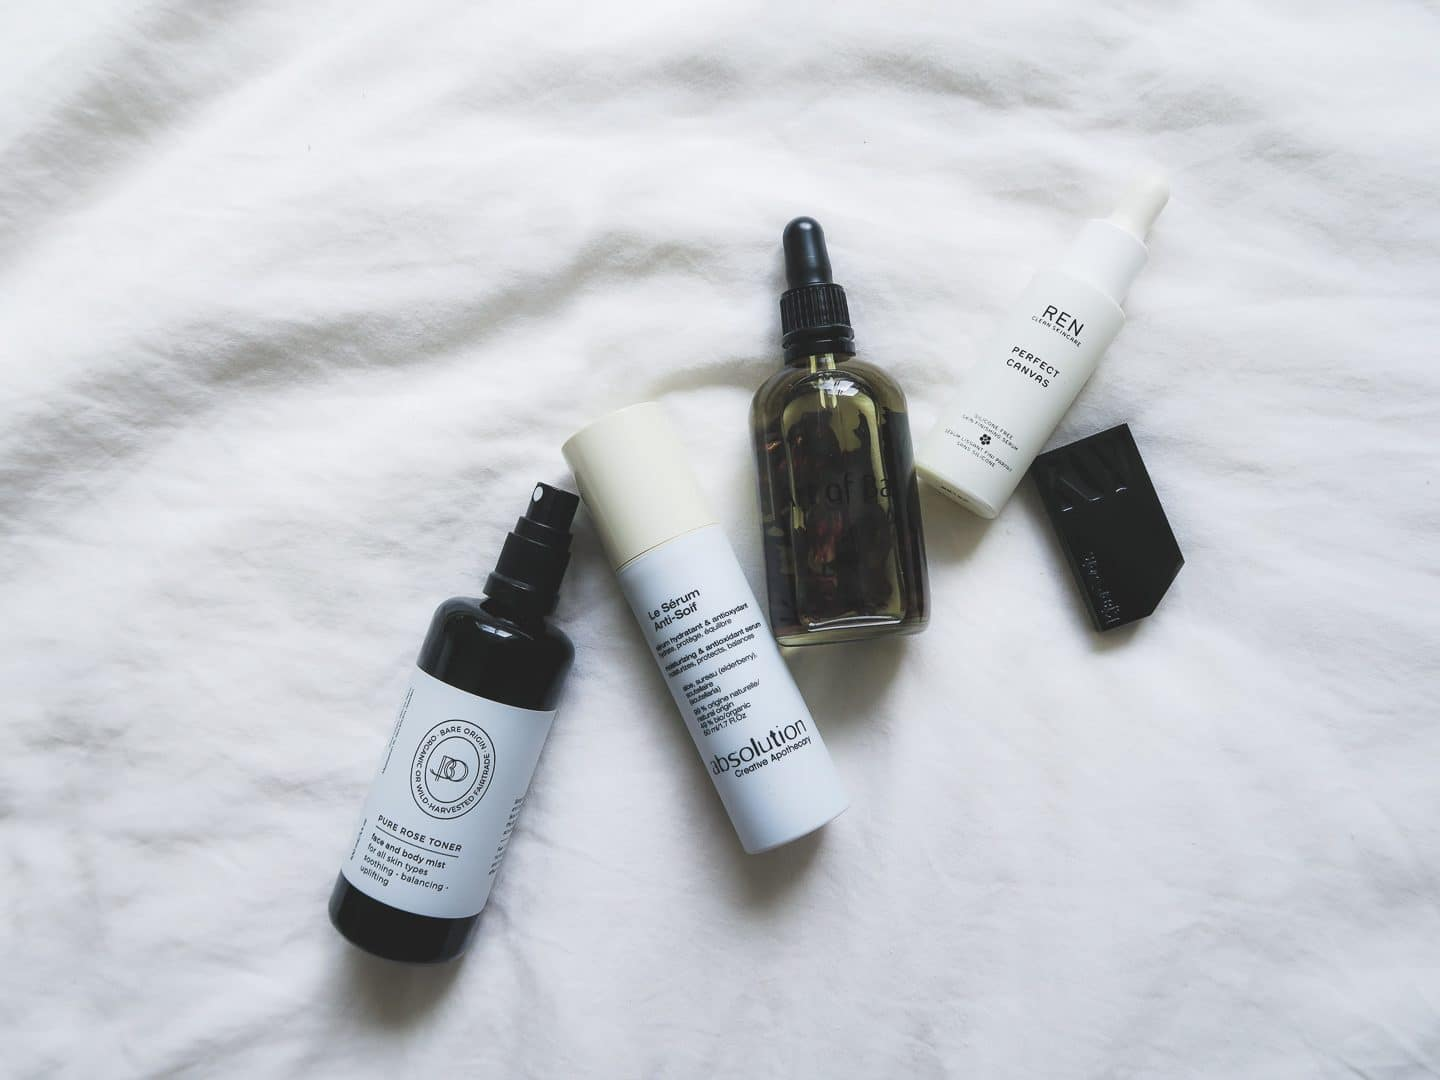 Luxe Natural Skincare That's Worth The Splurge | Curiously Conscious